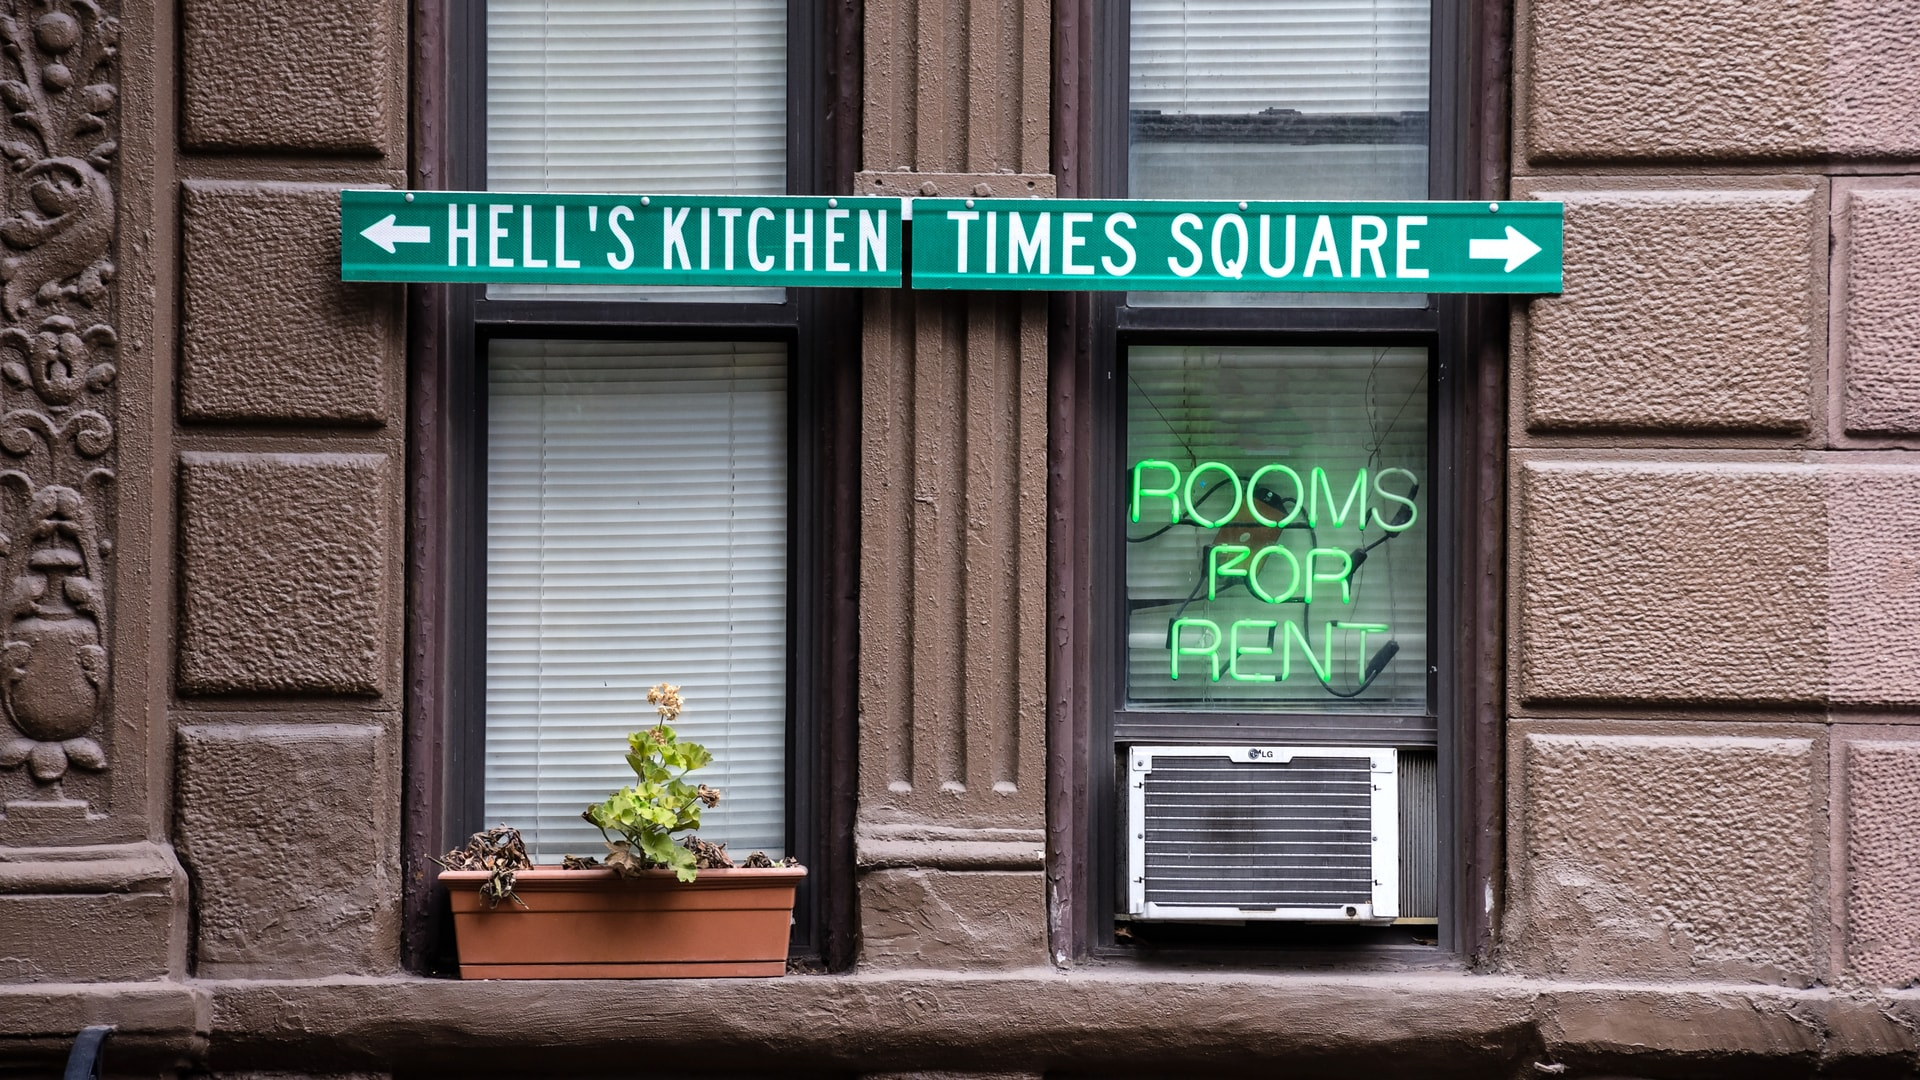 Platinum 39 s neighborhood guide to hell 39 s kitchen midtown for Hell s kitchen luxury apartments